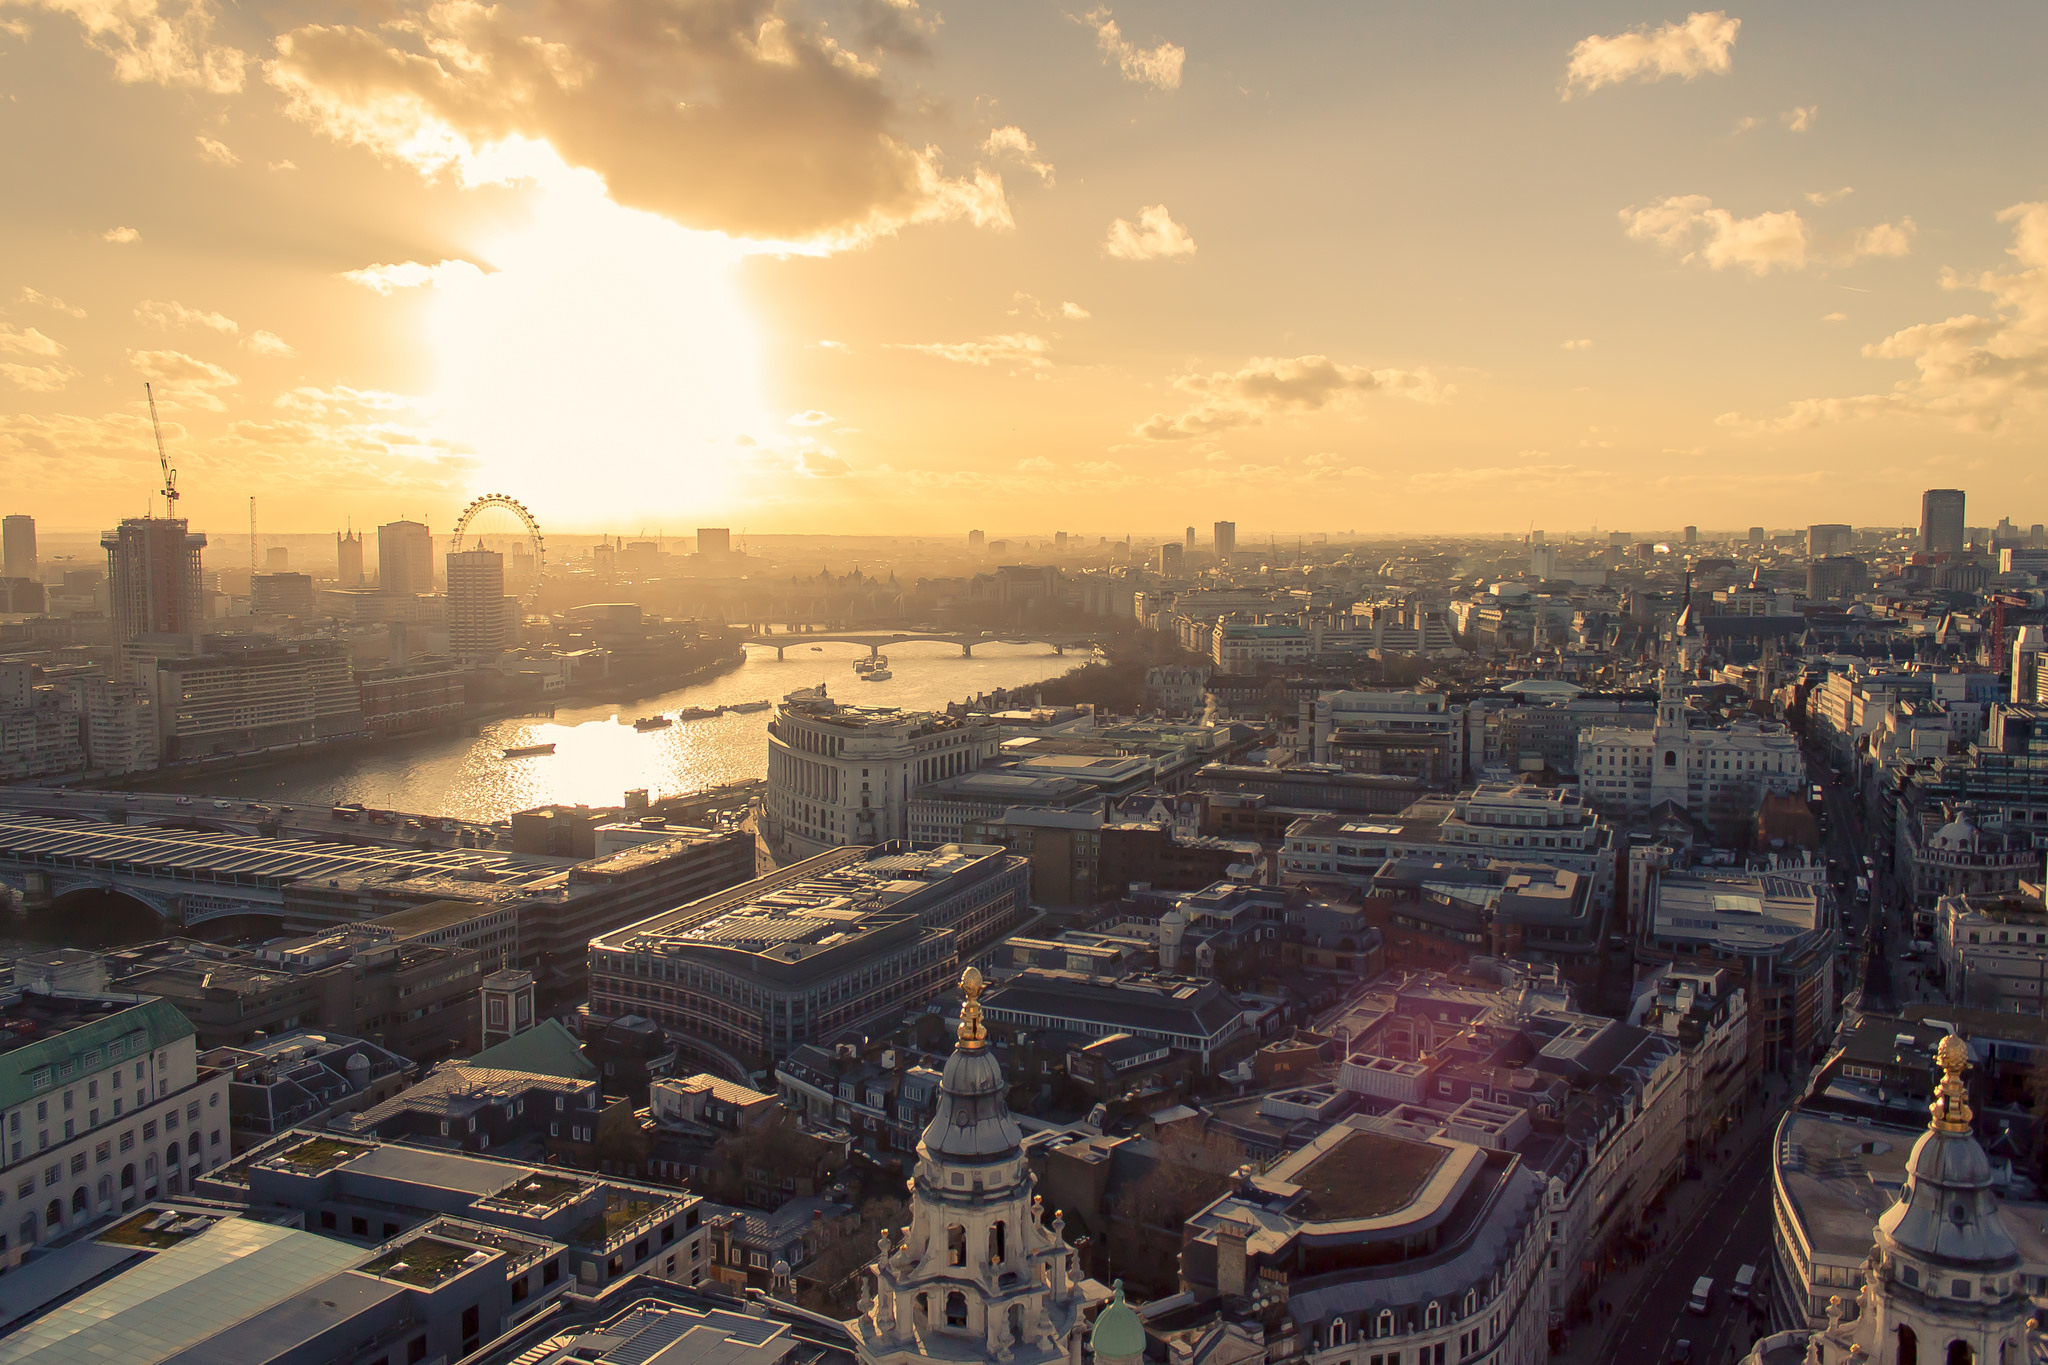 View of London from the dome of Saint Paul's Cathedral by gacabo vía Flickr